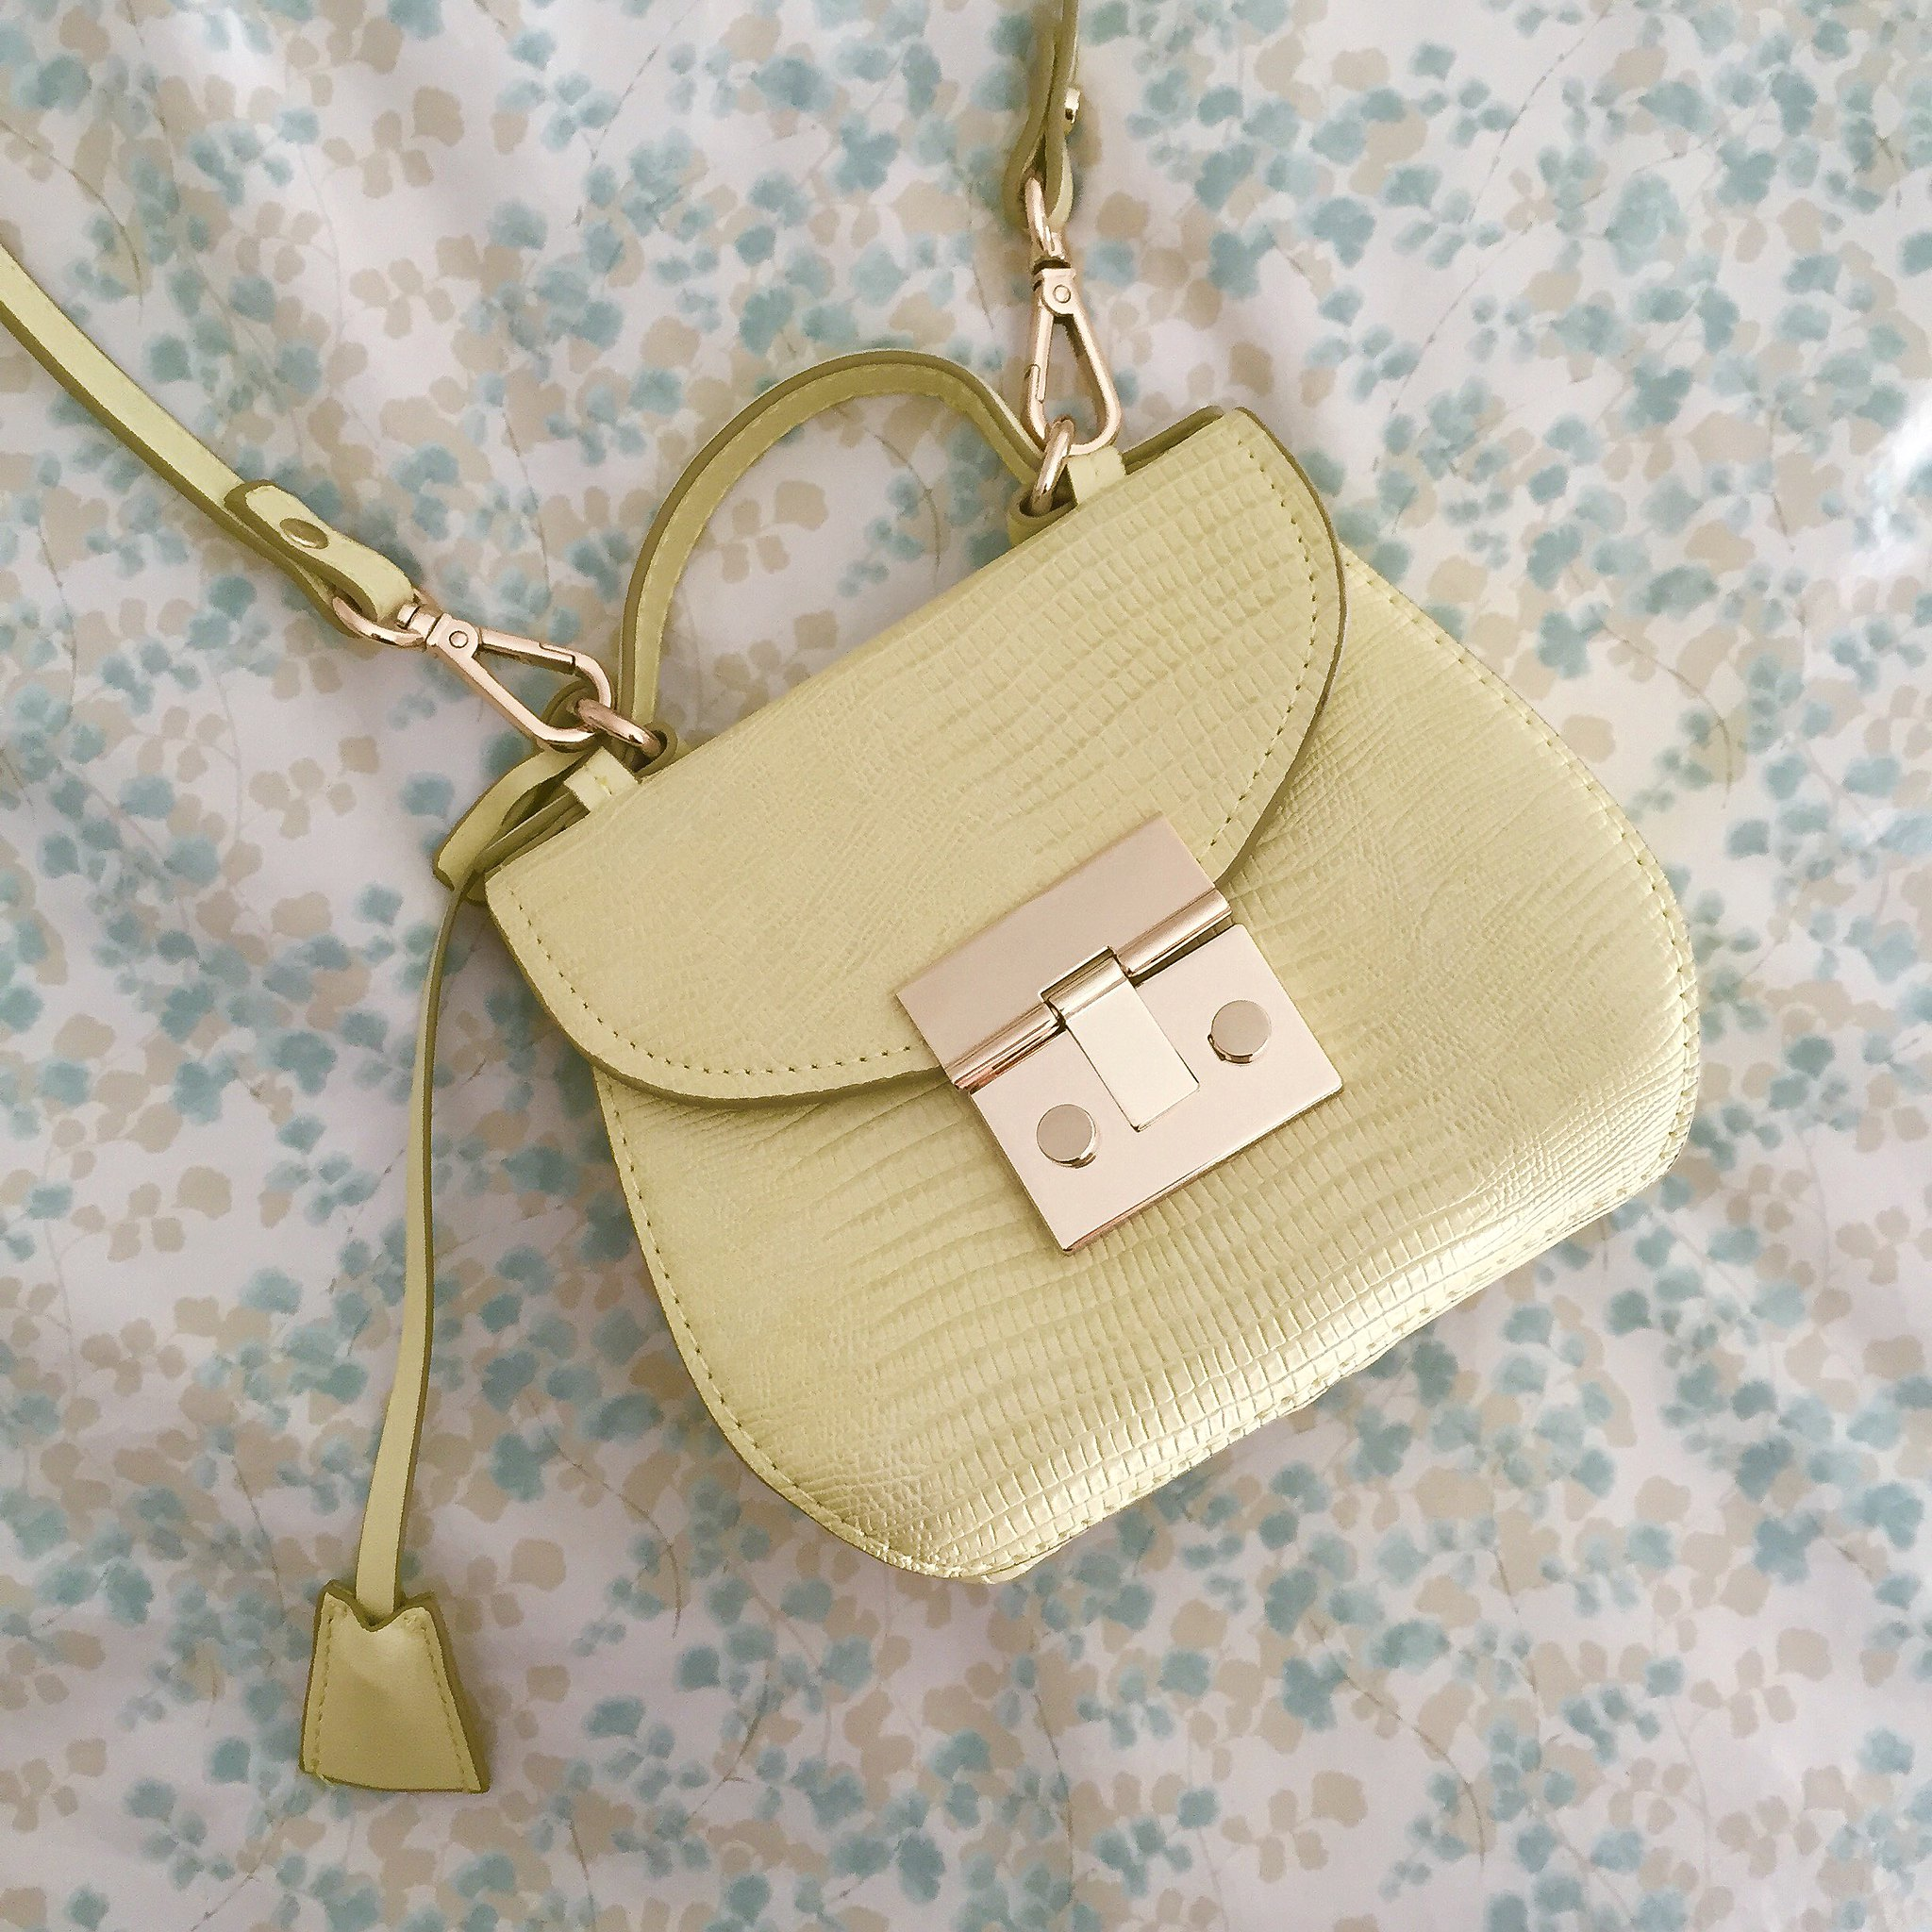 Zara Mini City Bag in Lime Green (item no. 4498/0004)